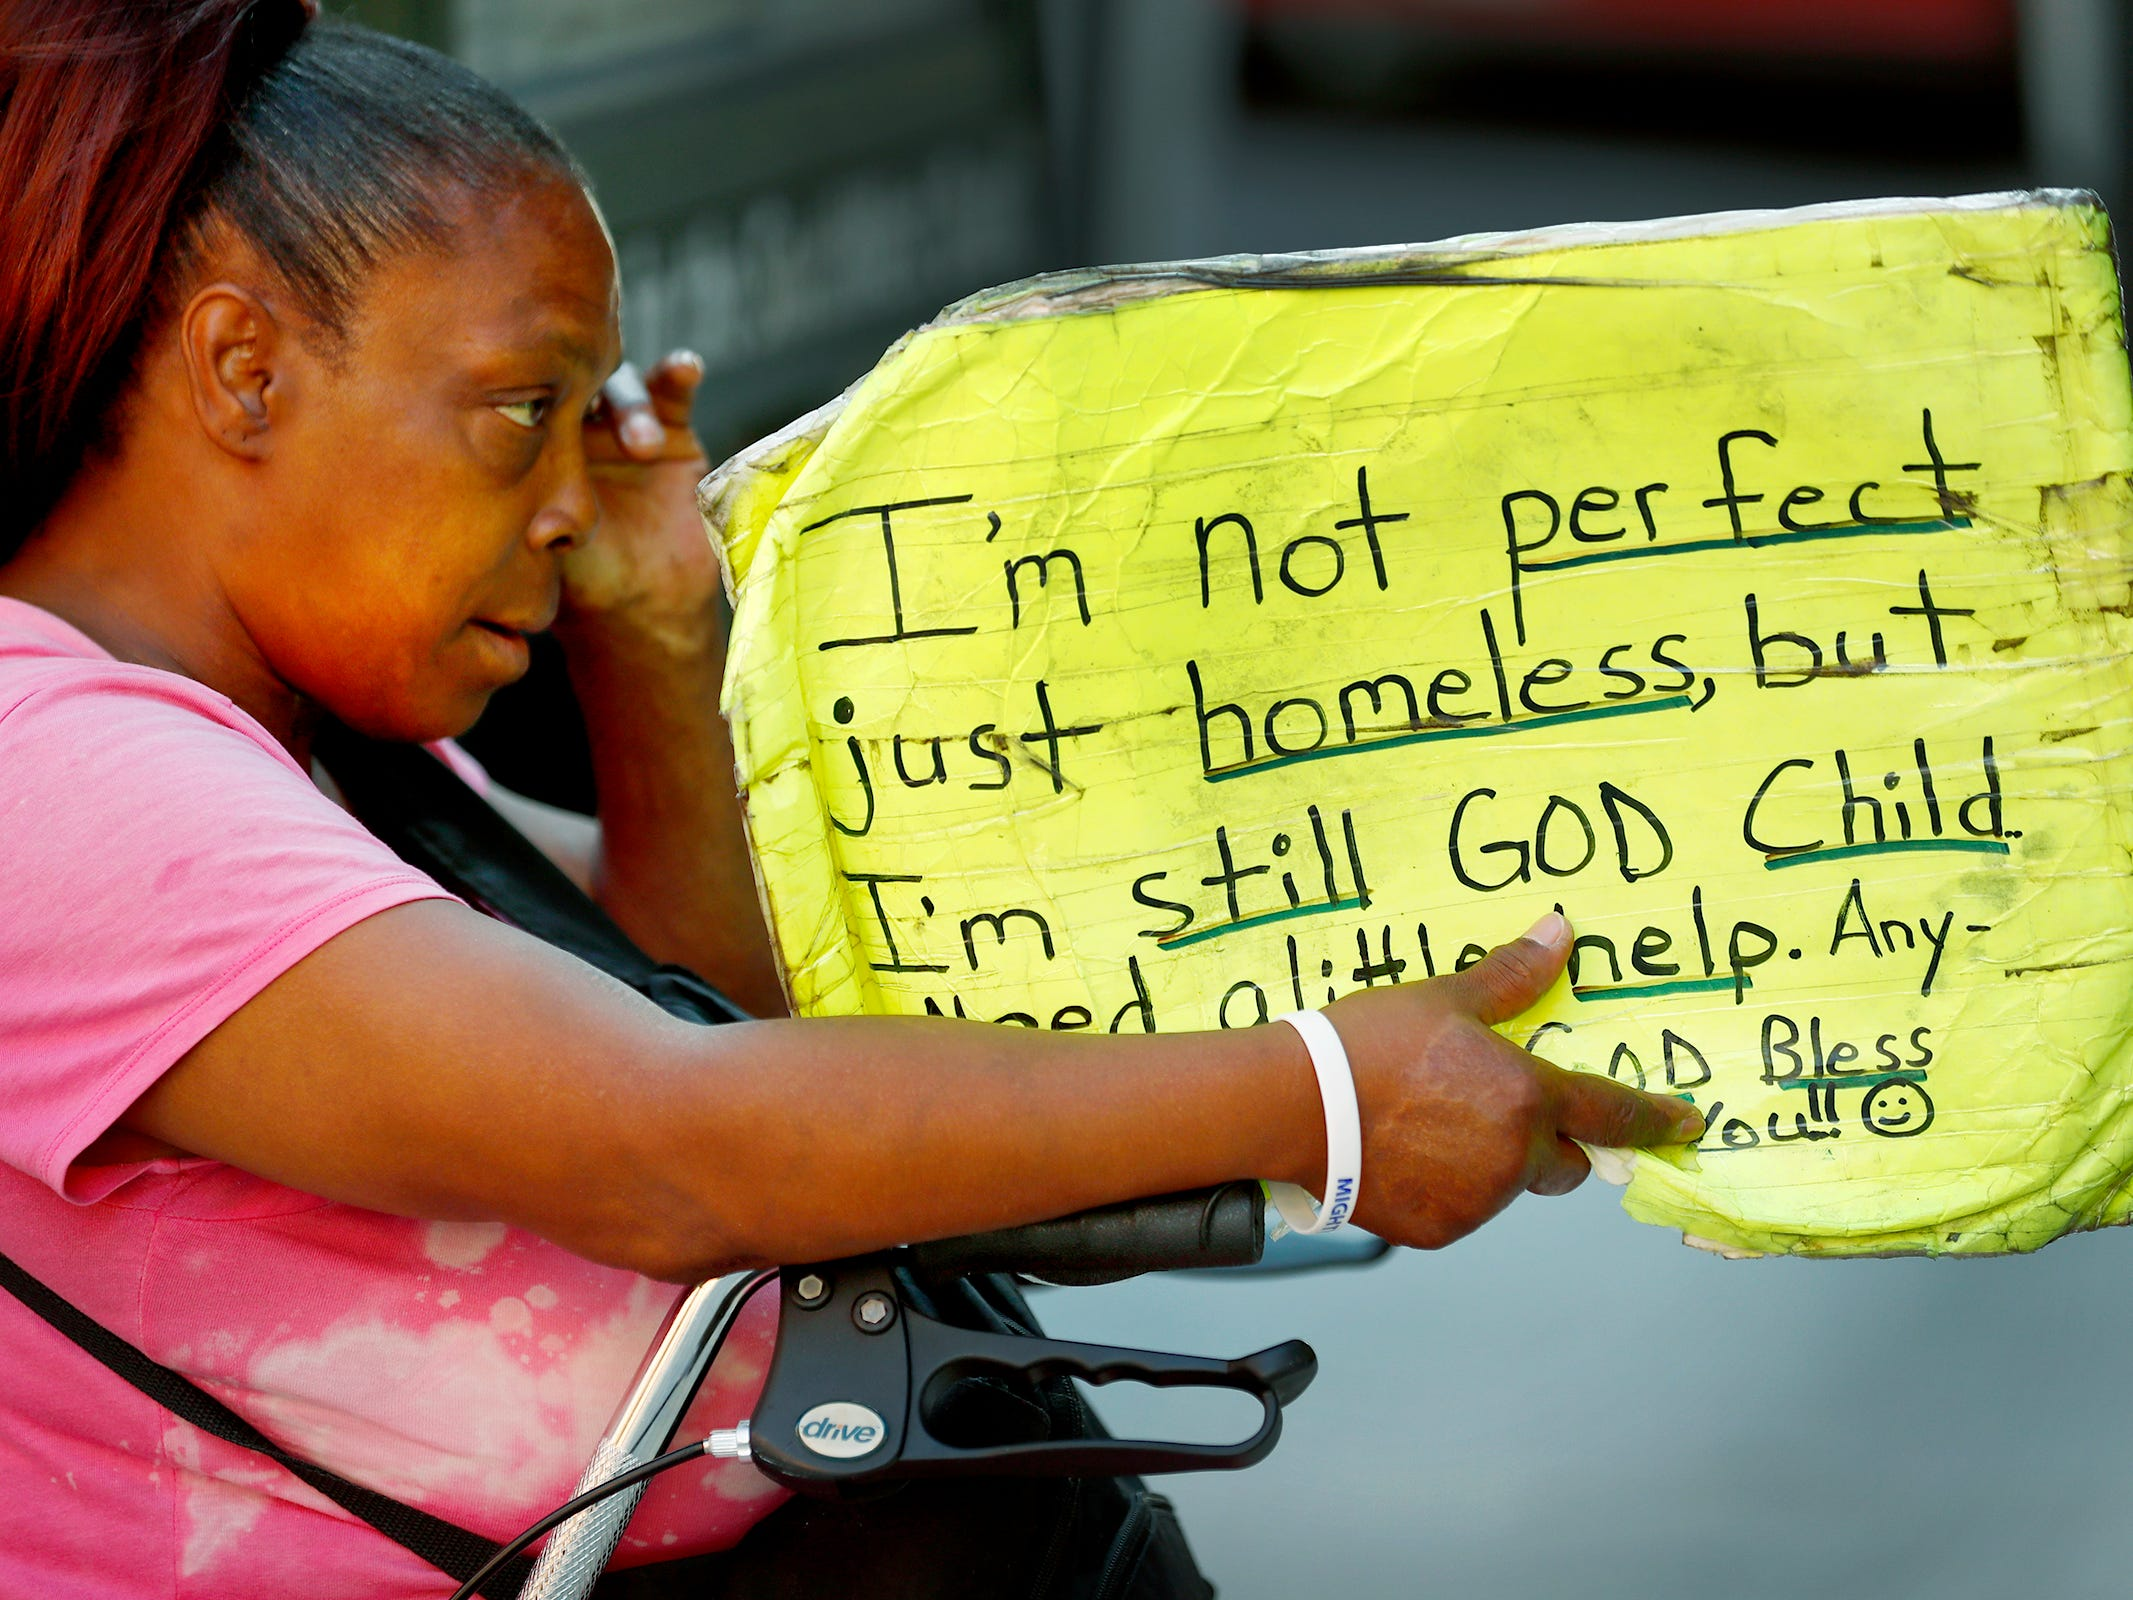 Regina Gilbert, a homeless woman in downtown Indianapolis, rubs her eye as she holds a sign asking for some help, Thursday, Aug. 9, 2018.  Coalition for Homelessness Intervention & Prevention (CHIP) and the city of Indianapolis have proposed a plan to end homelessness in the city by 2023.